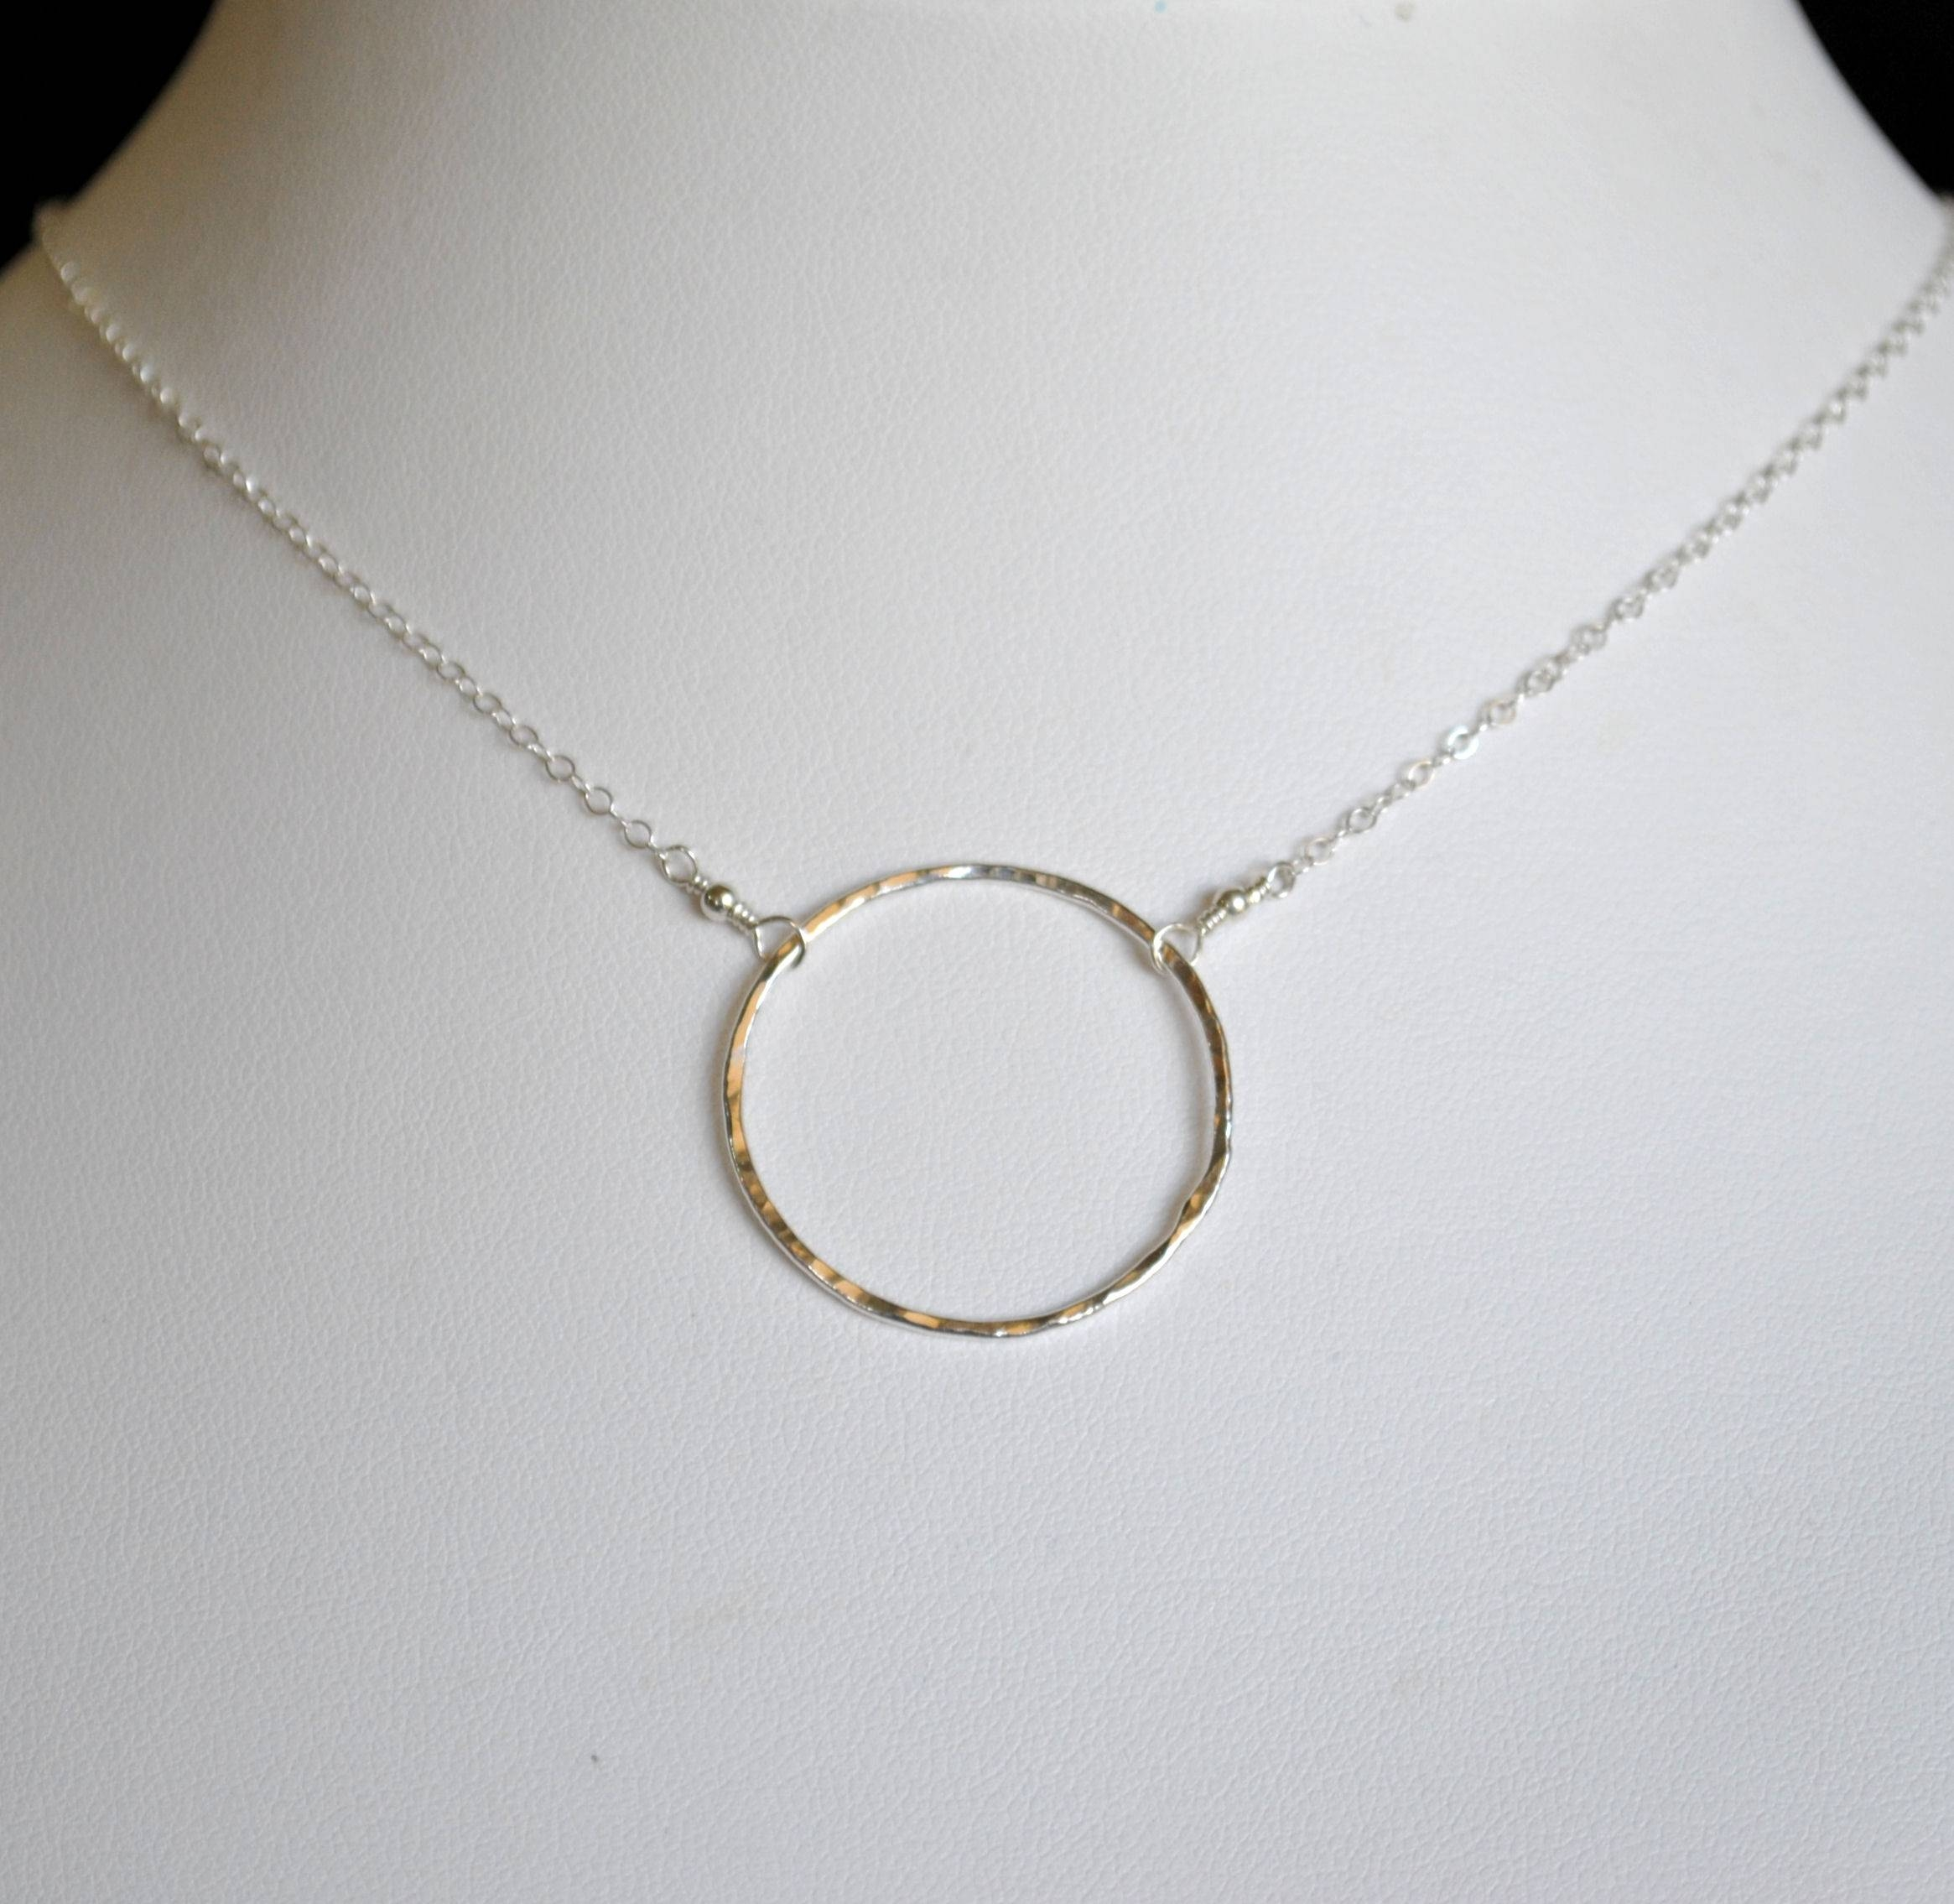 Most Popular Wedding Rings: Wedding Ring On Necklace Intended For Wedding Bands On Necklace (View 5 of 15)